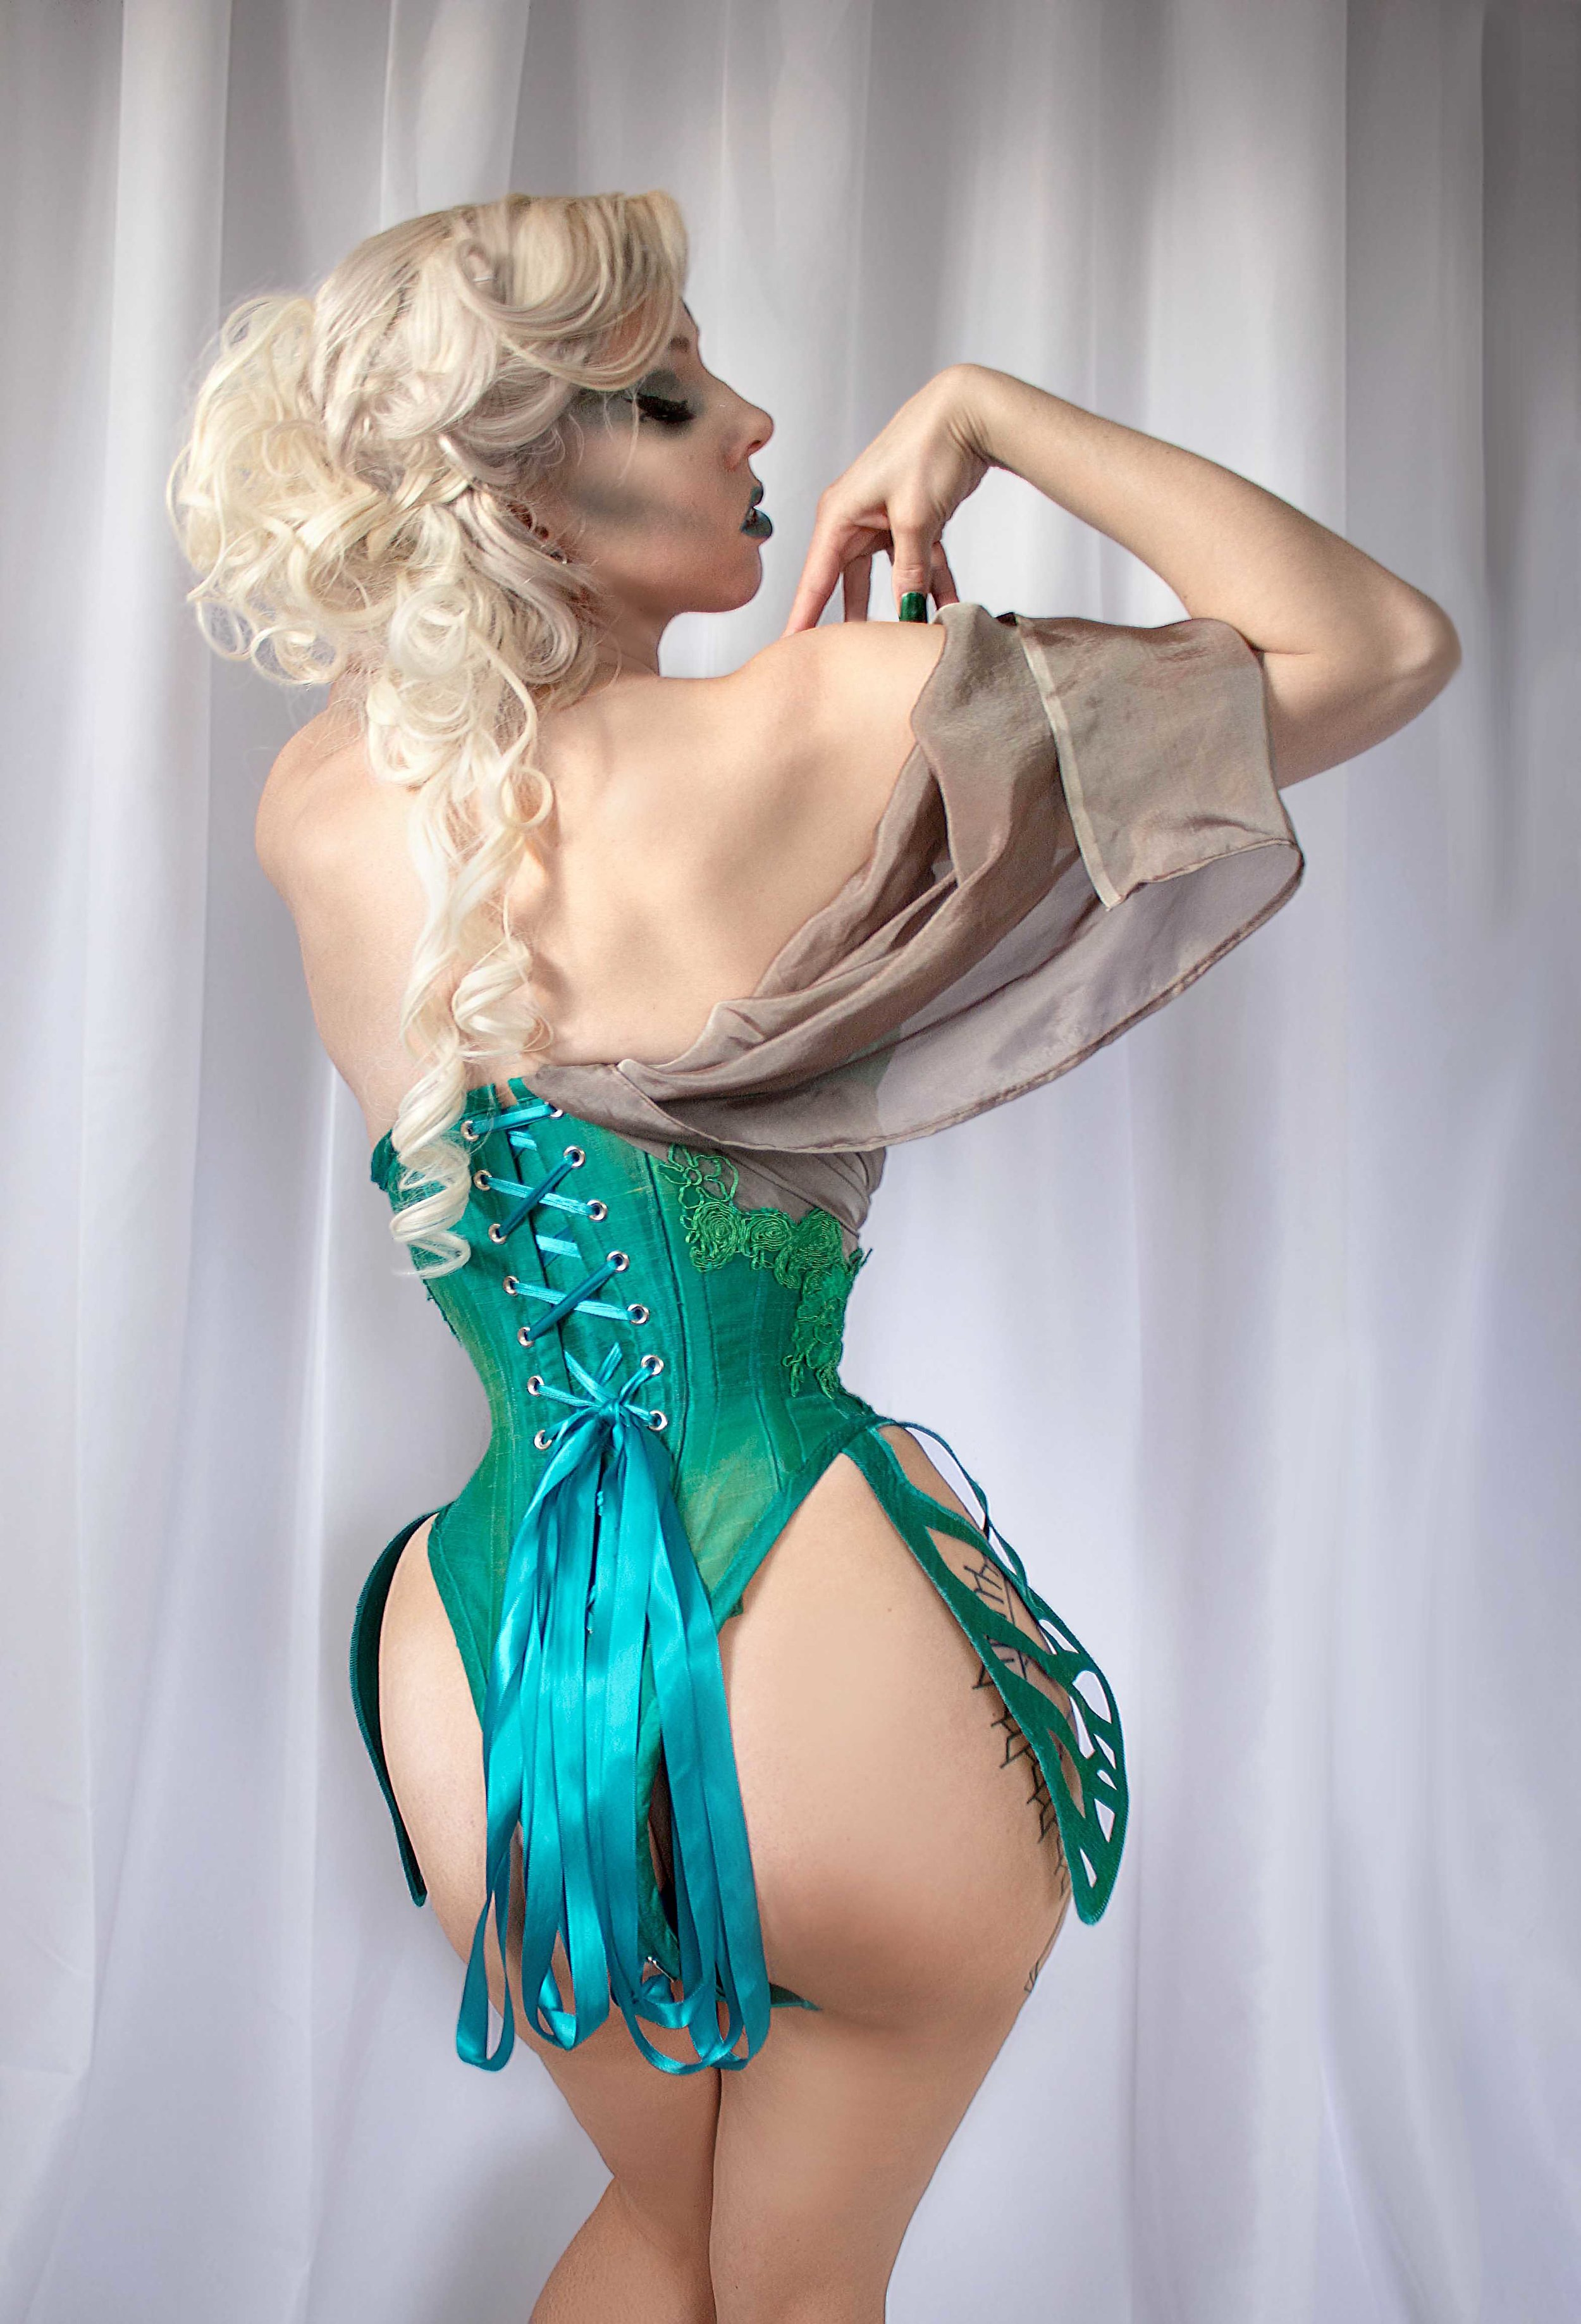 Exoskeleton - Whether a corset is being laced up or removed, it often does hint at a sort of nature-defying transformation.